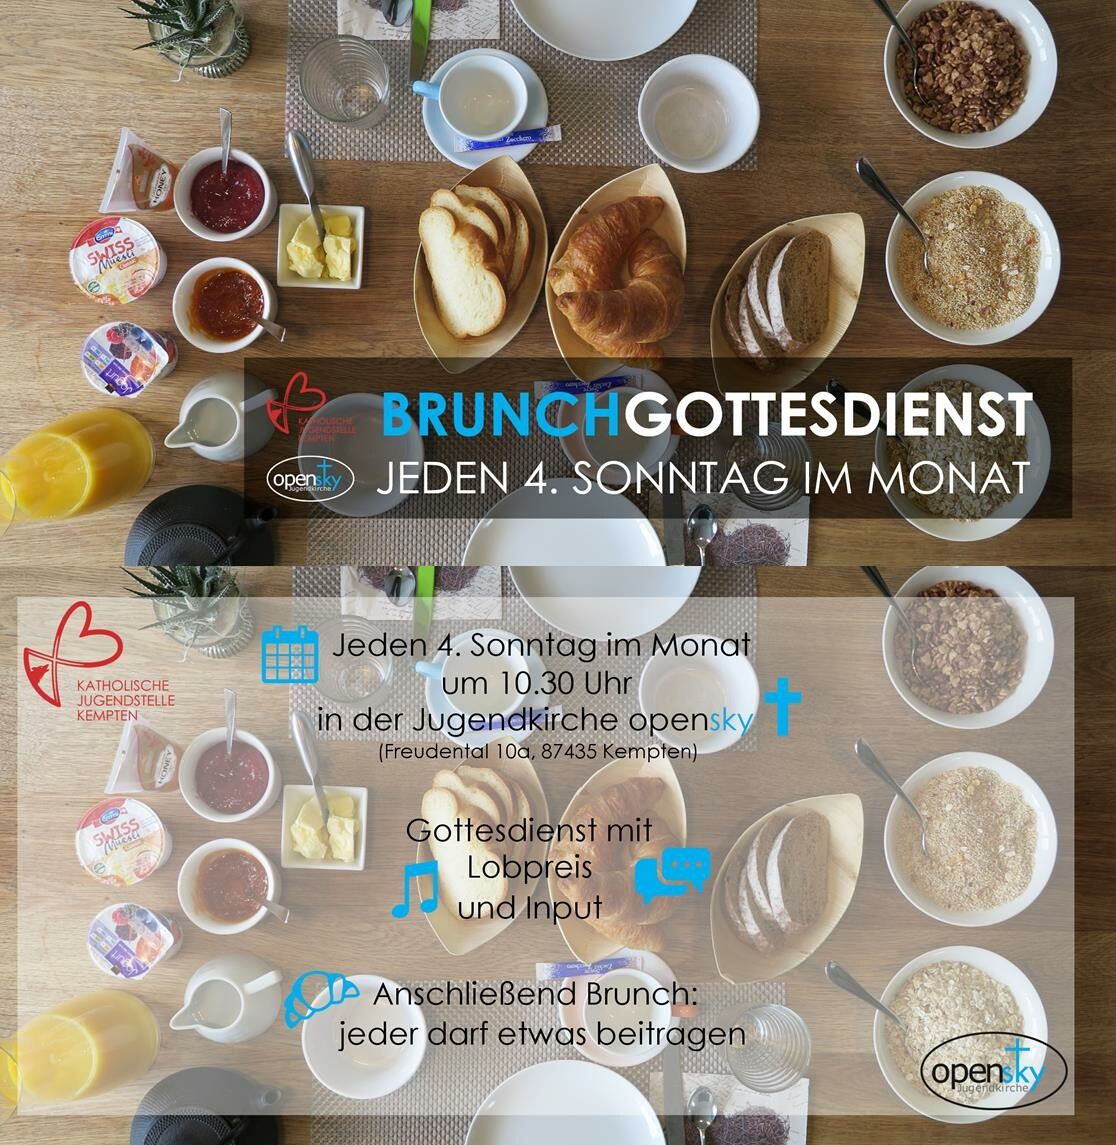 Brunchgottesdienst in Kempten  (Sonntag, 25. April 2021)